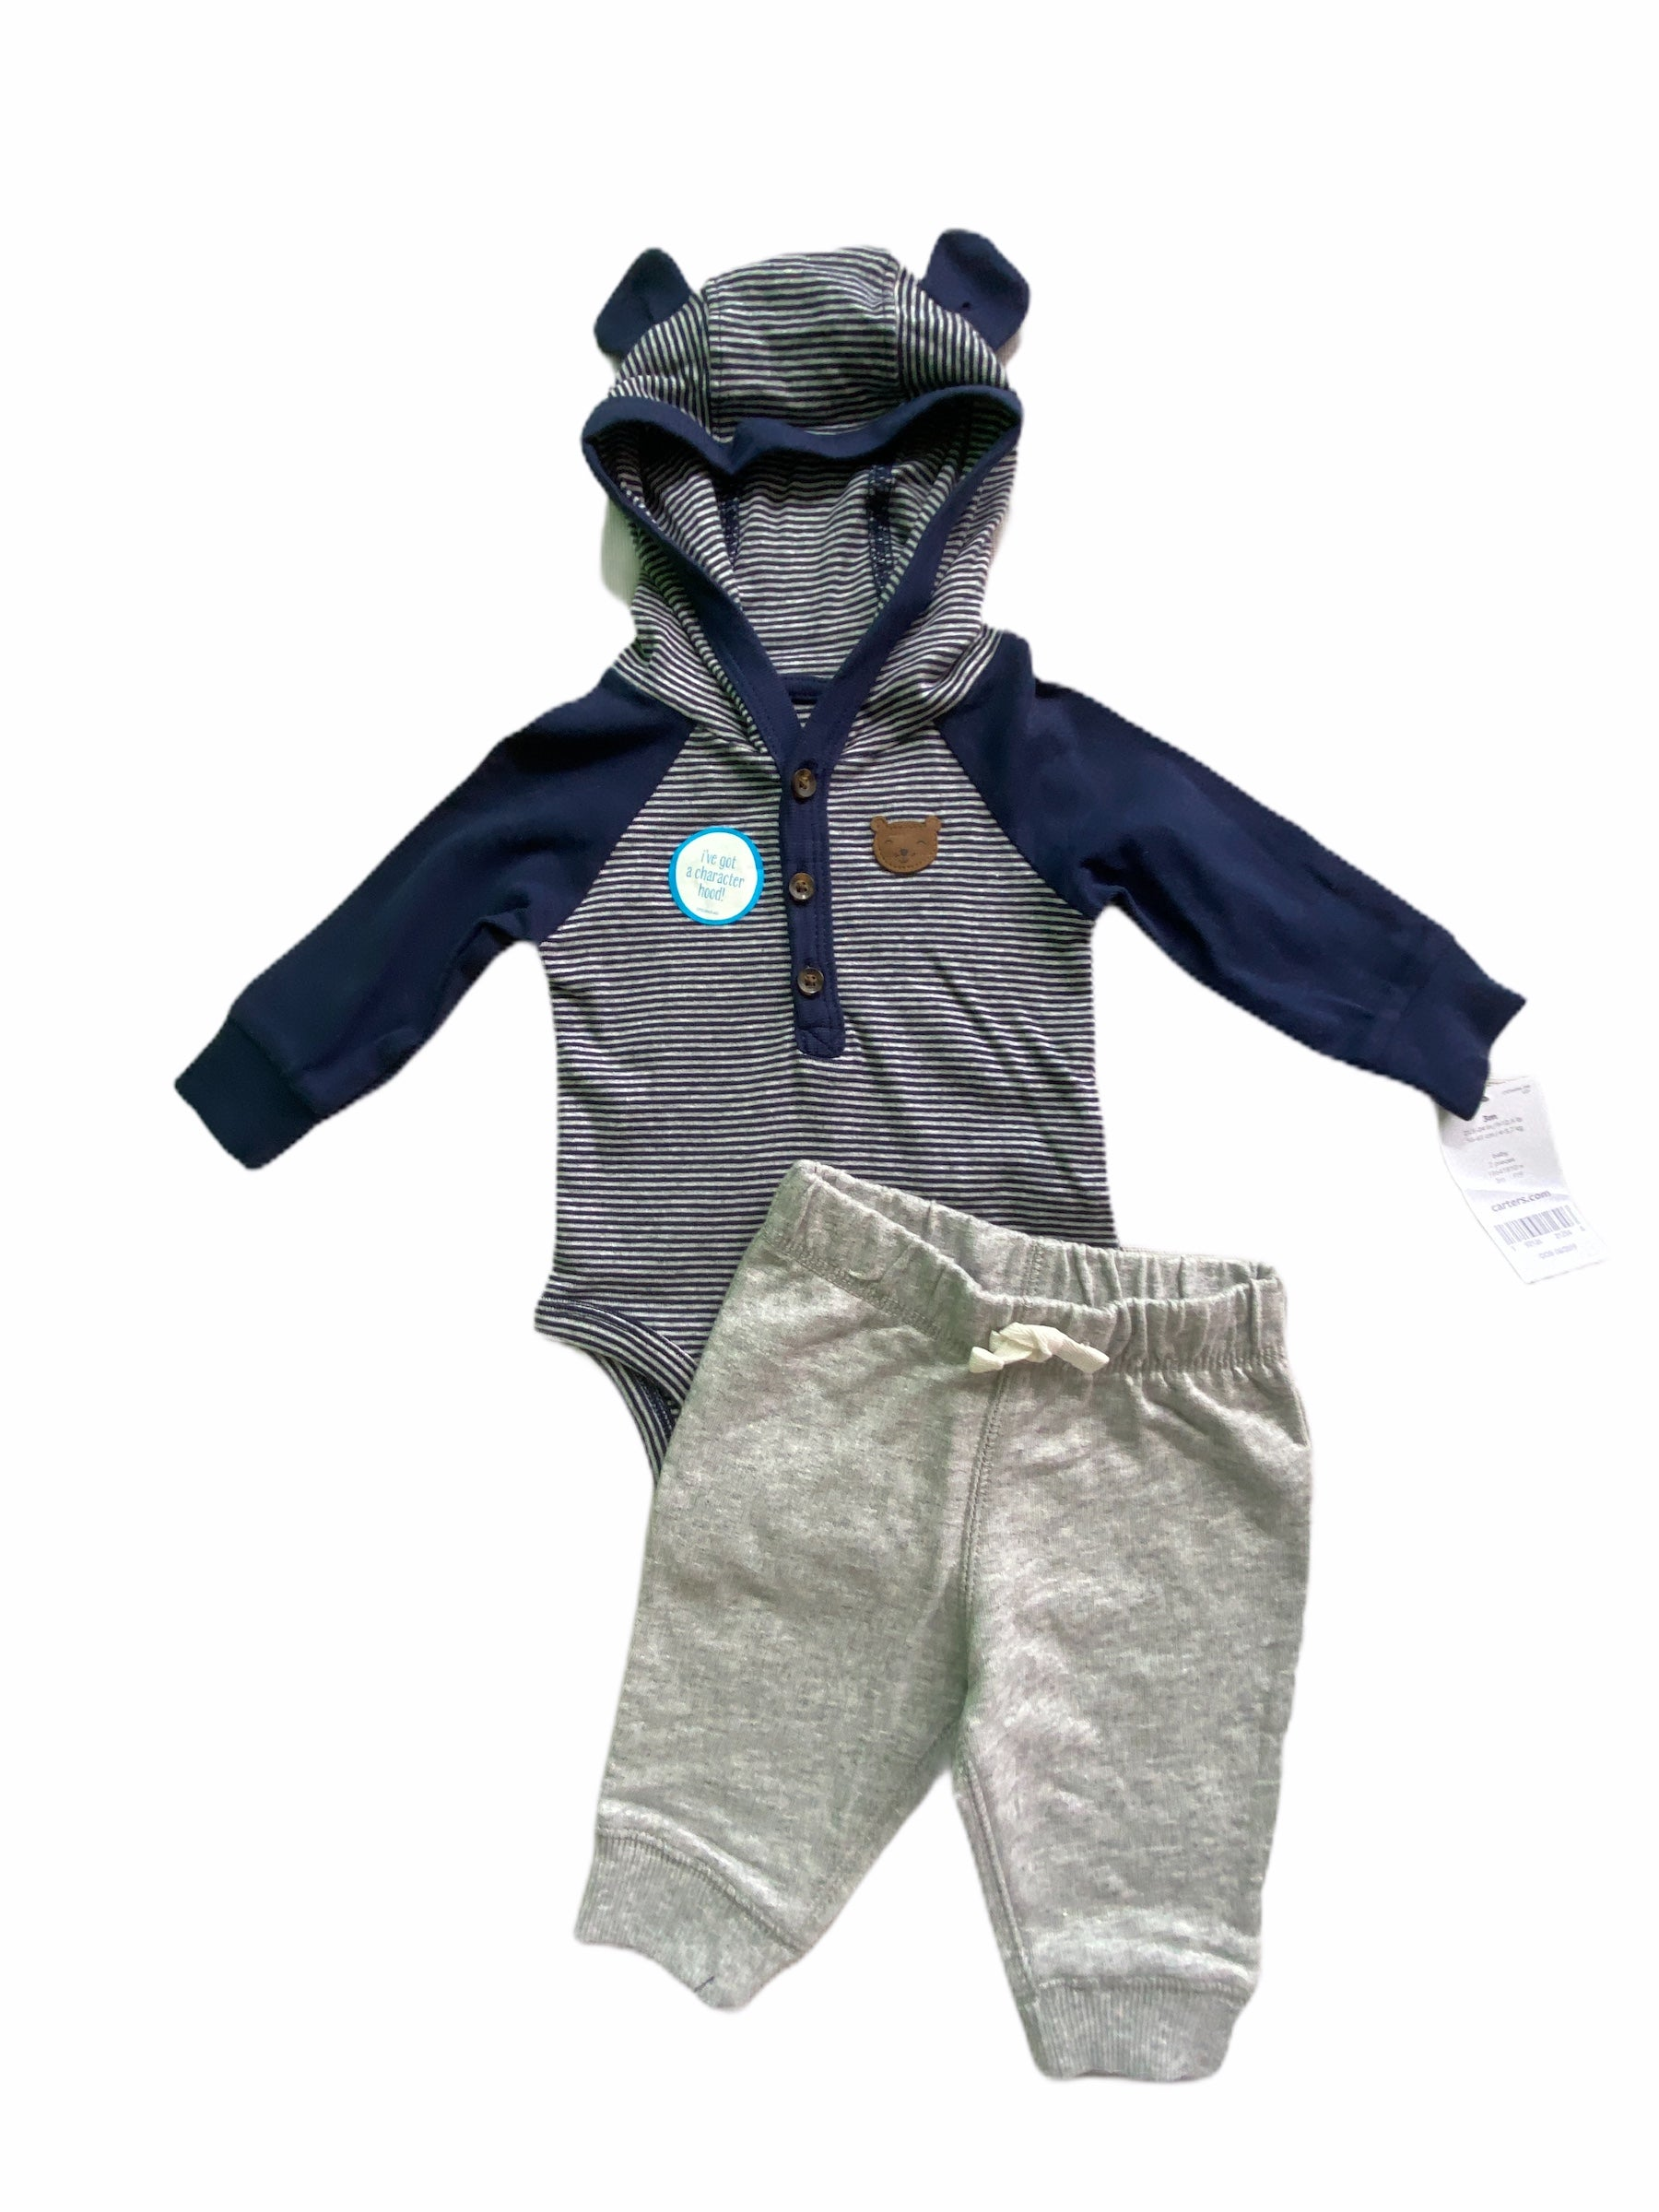 Carter's 2 PC Navy Stripe Hooded Onesie/Pant Set NWT (3M Boys)